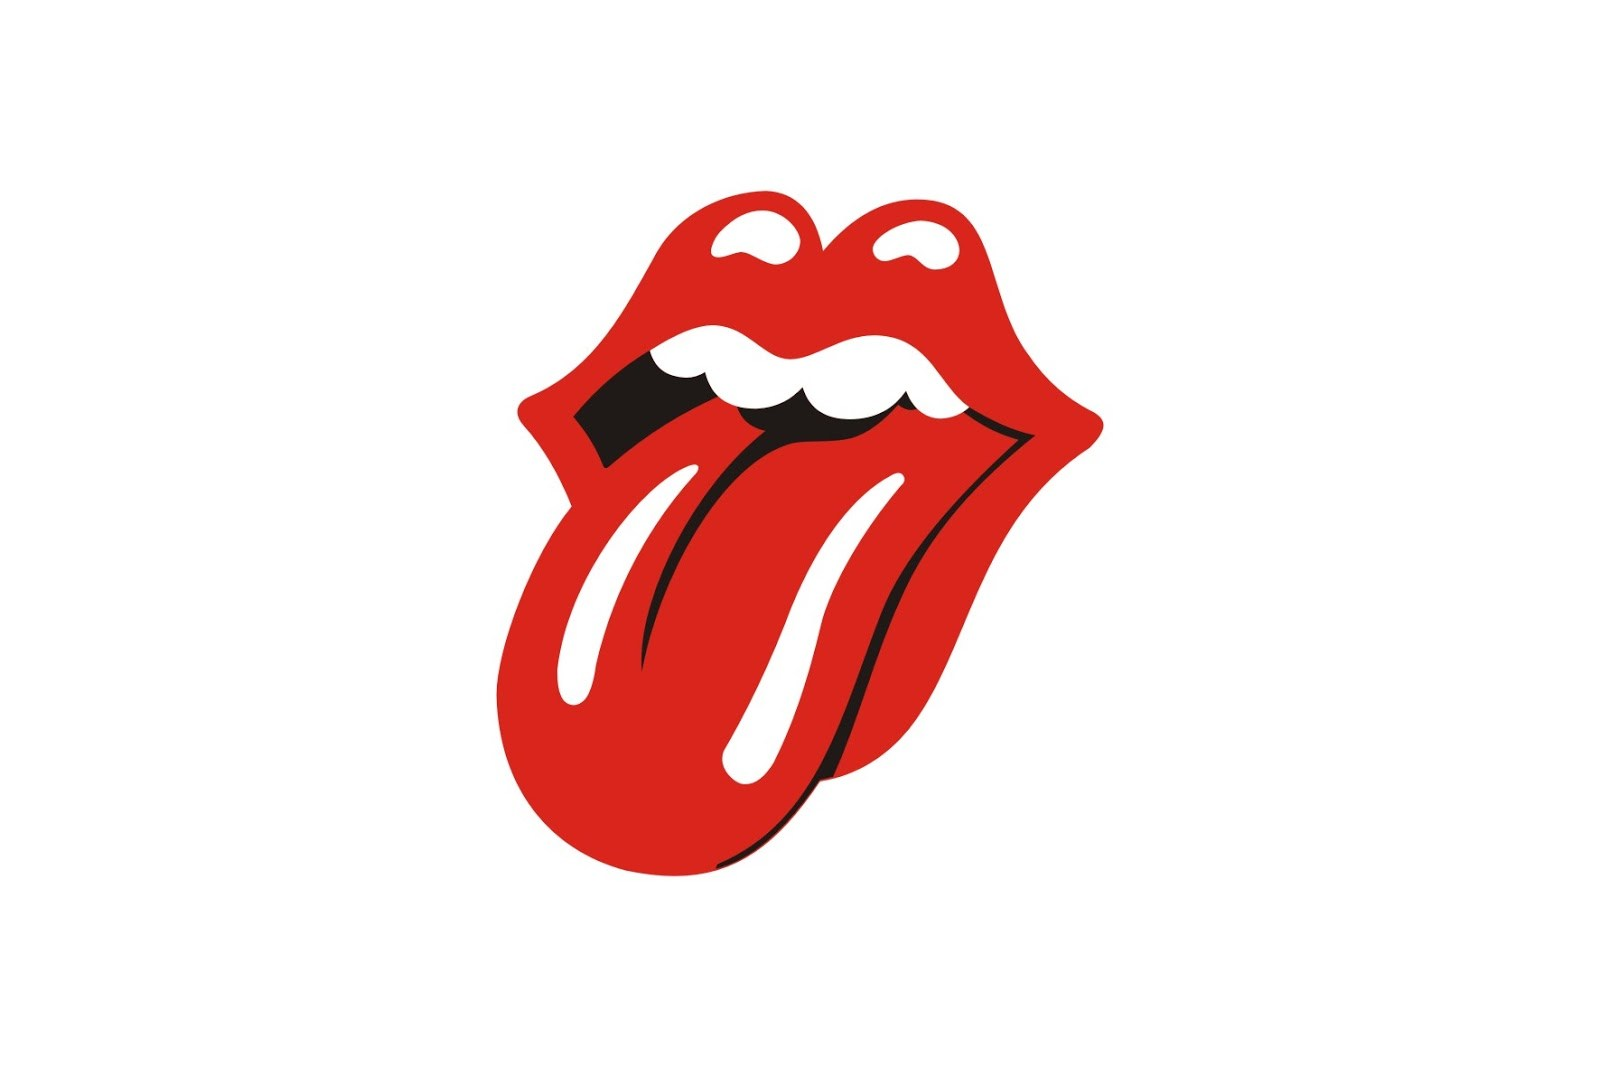 Clipart rolling stones clipart royalty free library Rolling stones clipart 5 » Clipart Portal clipart royalty free library